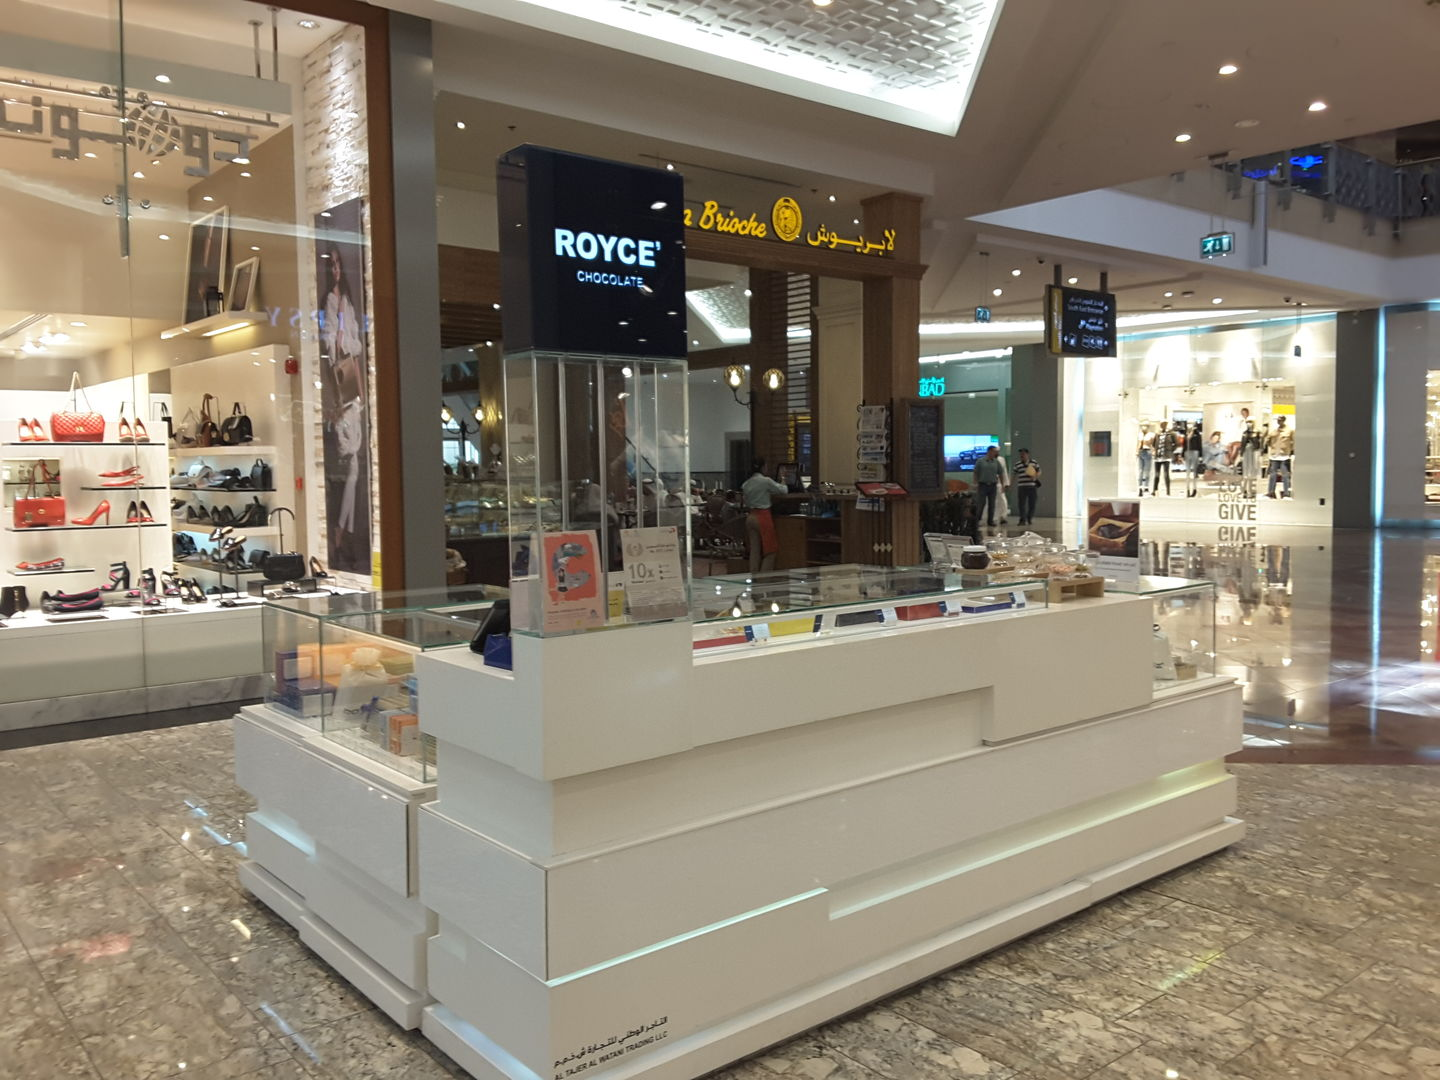 HiDubai-business-royce-chocolates-food-beverage-bakeries-desserts-sweets-mirdif-dubai-2